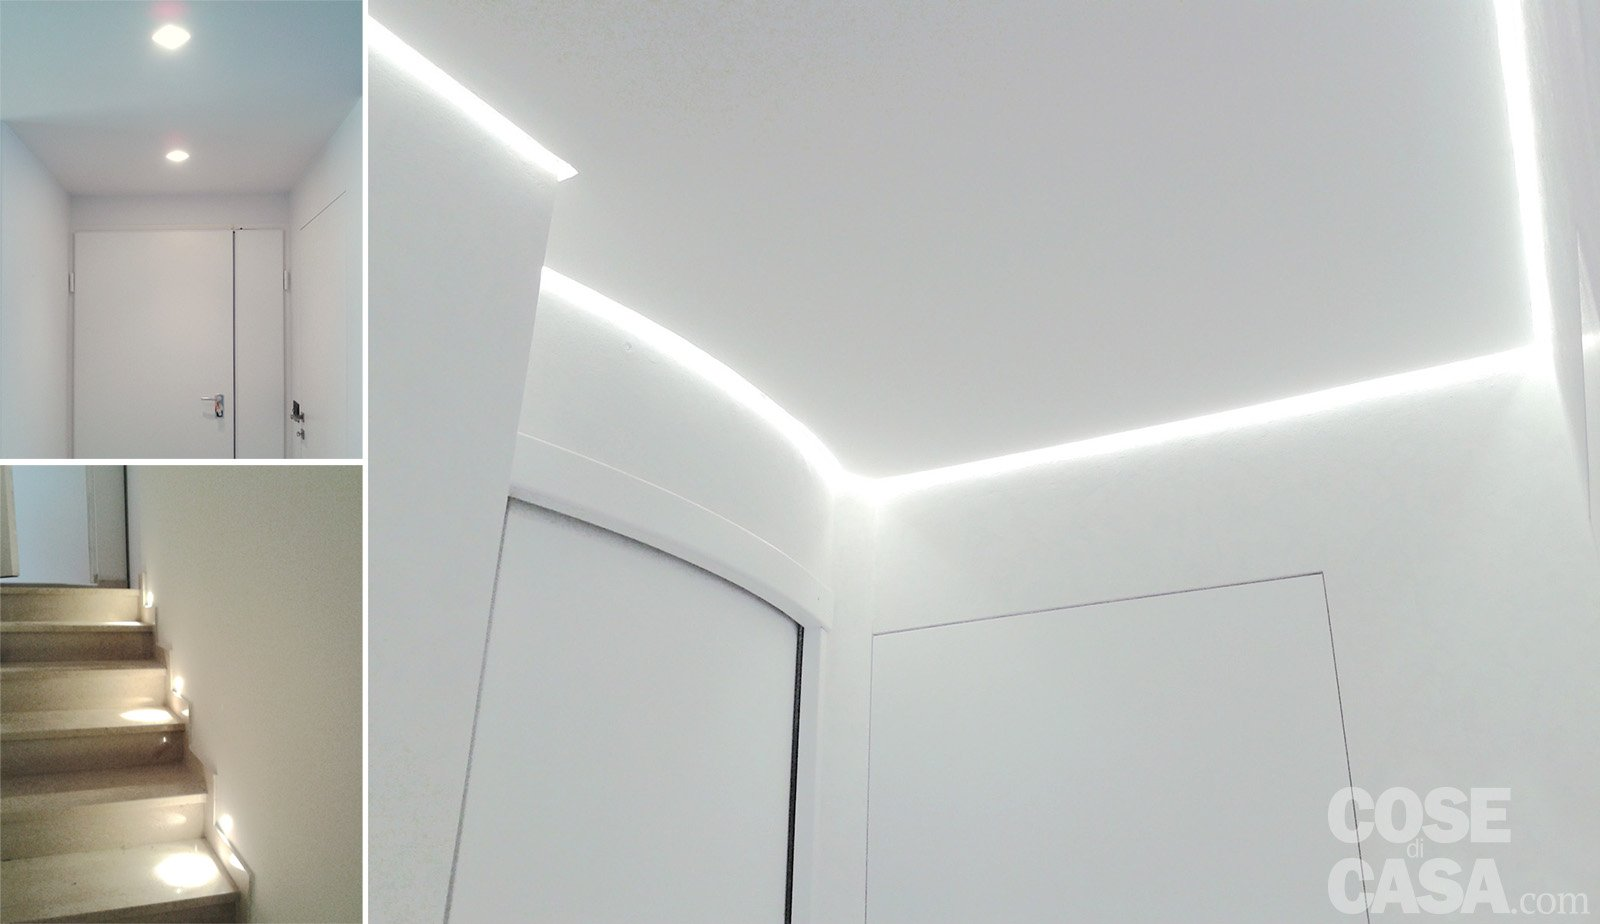 Casa immobiliare accessori illuminazione led a soffitto for Illuminazione led a soffitto